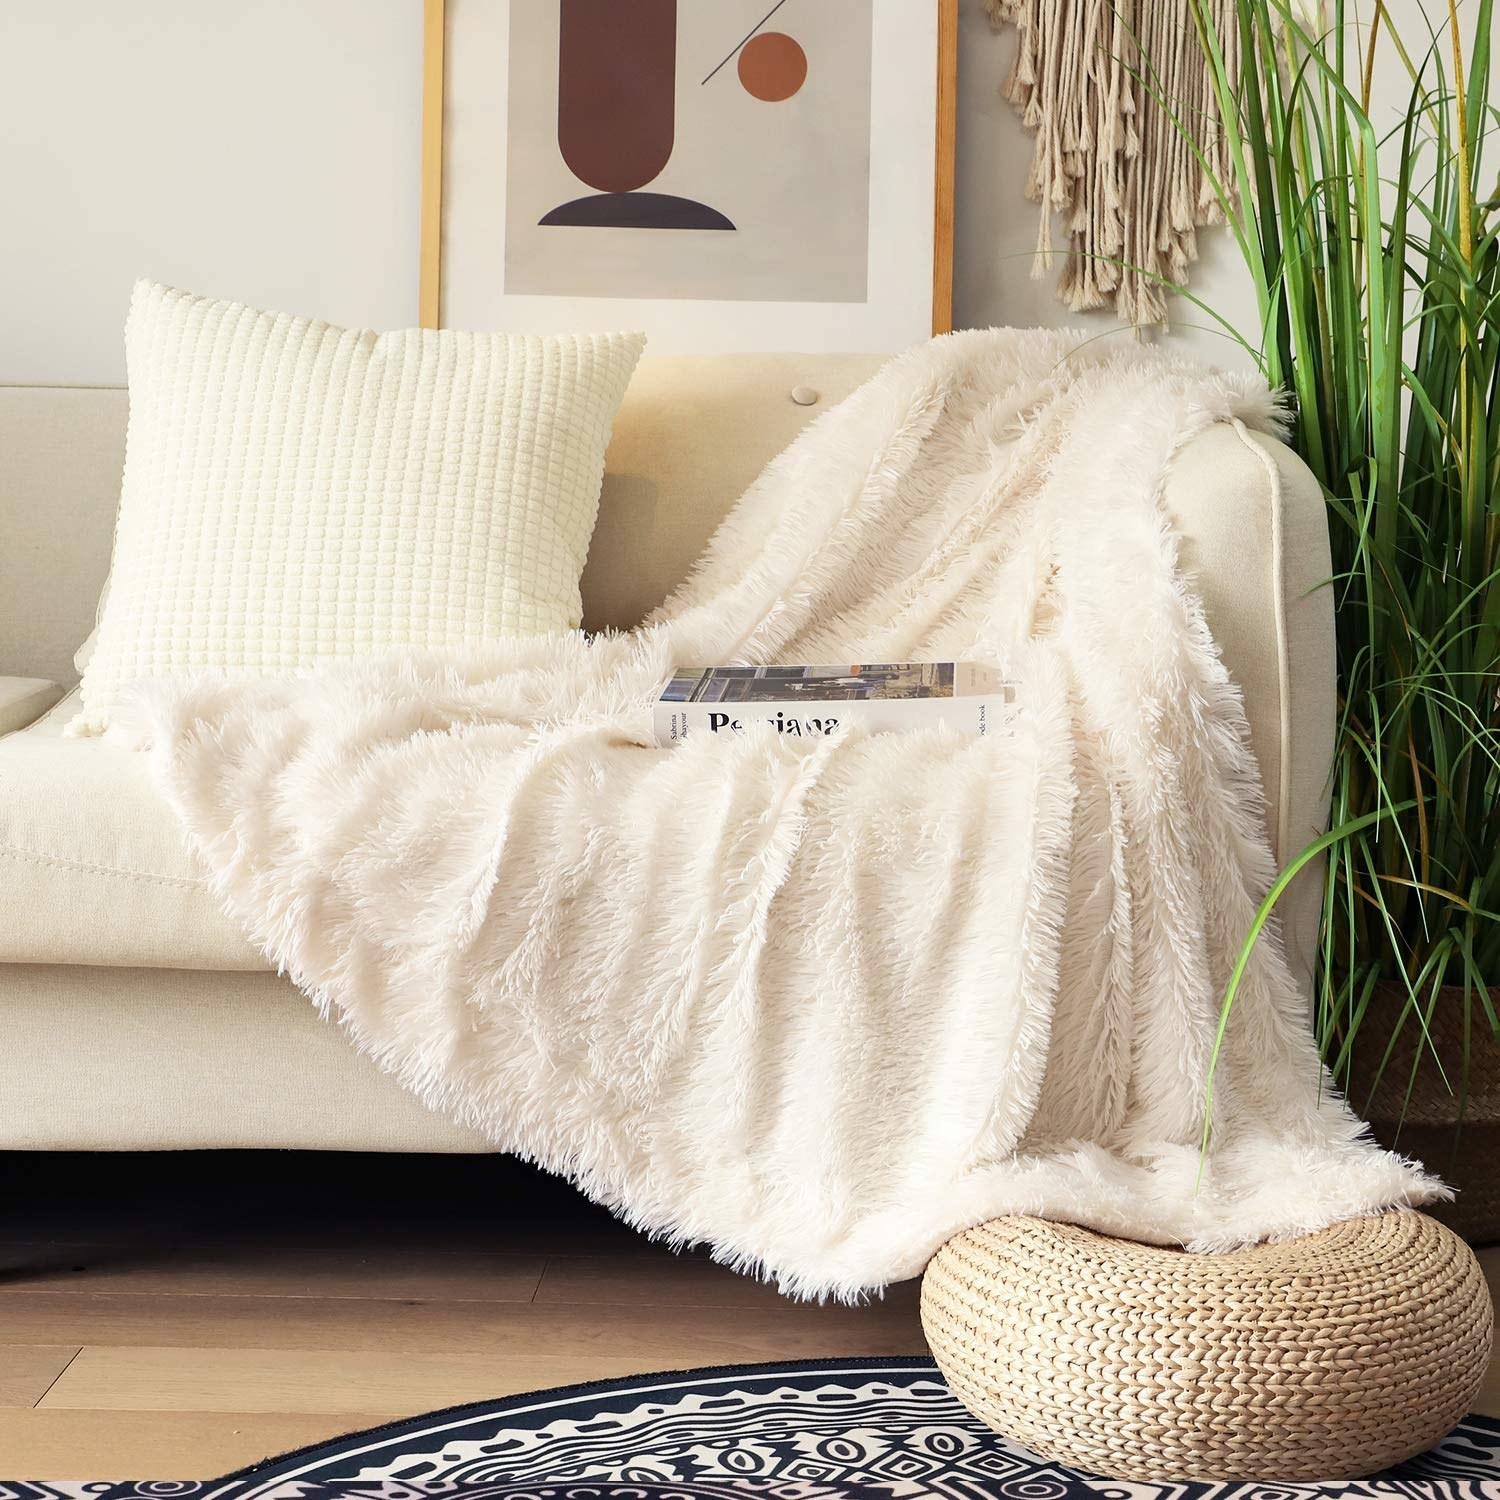 white fuzzy throw on a couch